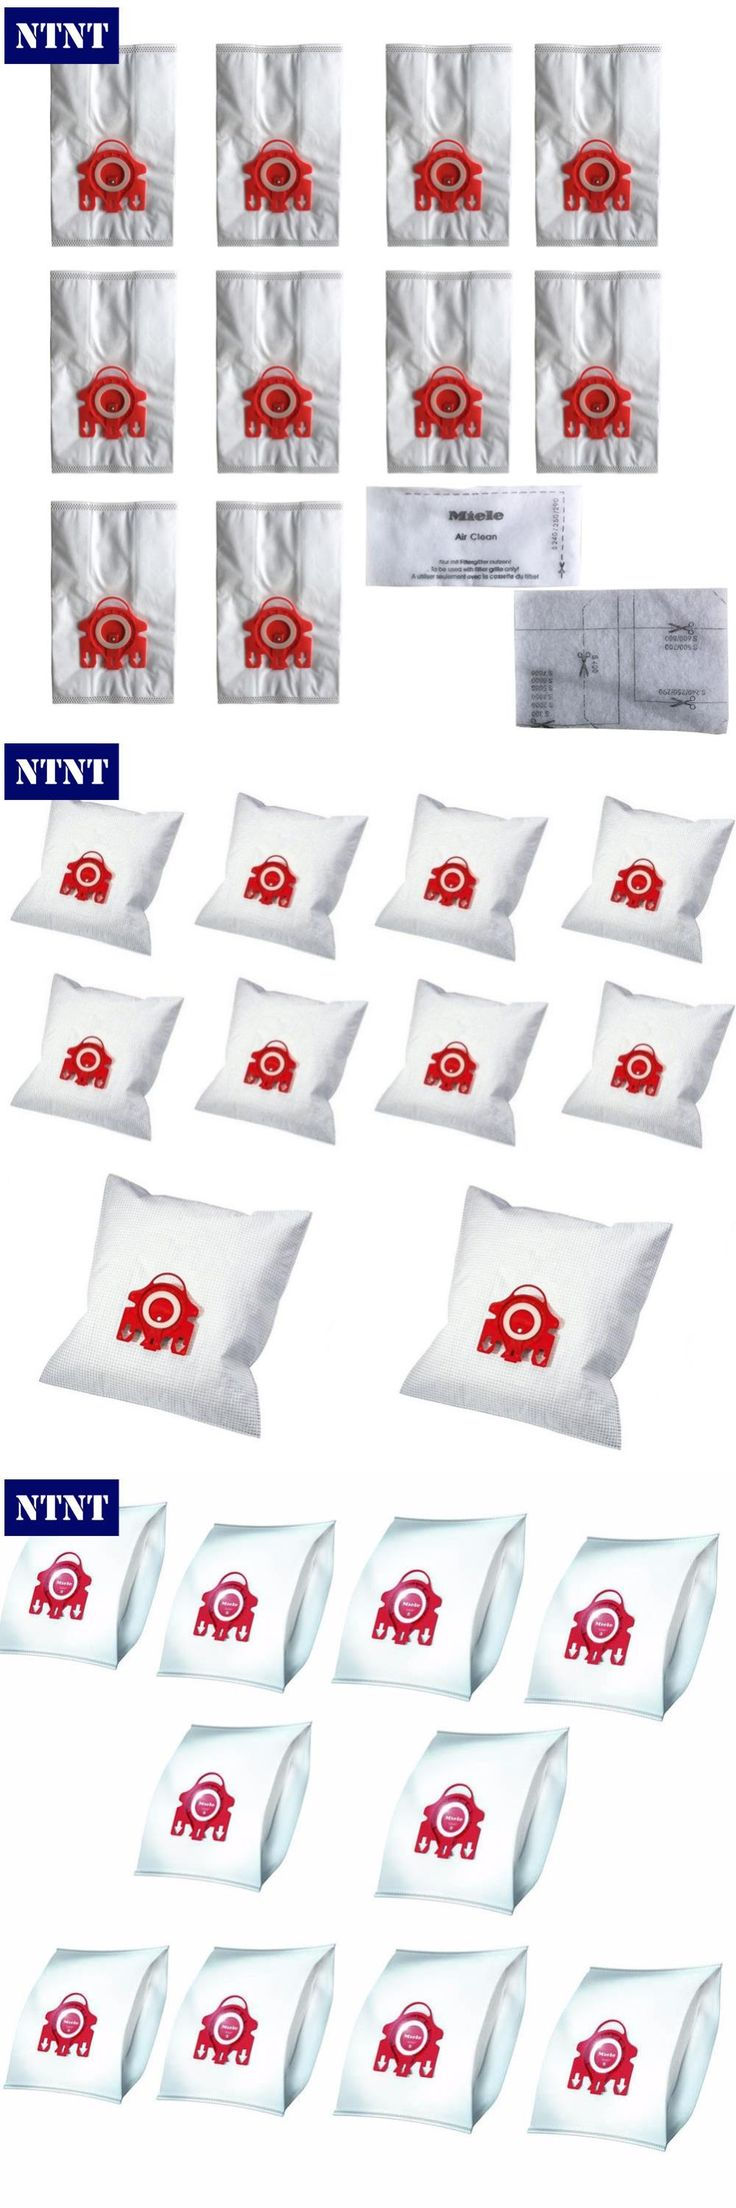 [Visit to Buy] NTNT 10Pcs/Lot For MIELE FJM C1 & C2 Synthetic Type Hoover Hepa Vacuum Cleaner DUST BAGS With 4pcs FILTERS #Advertisement